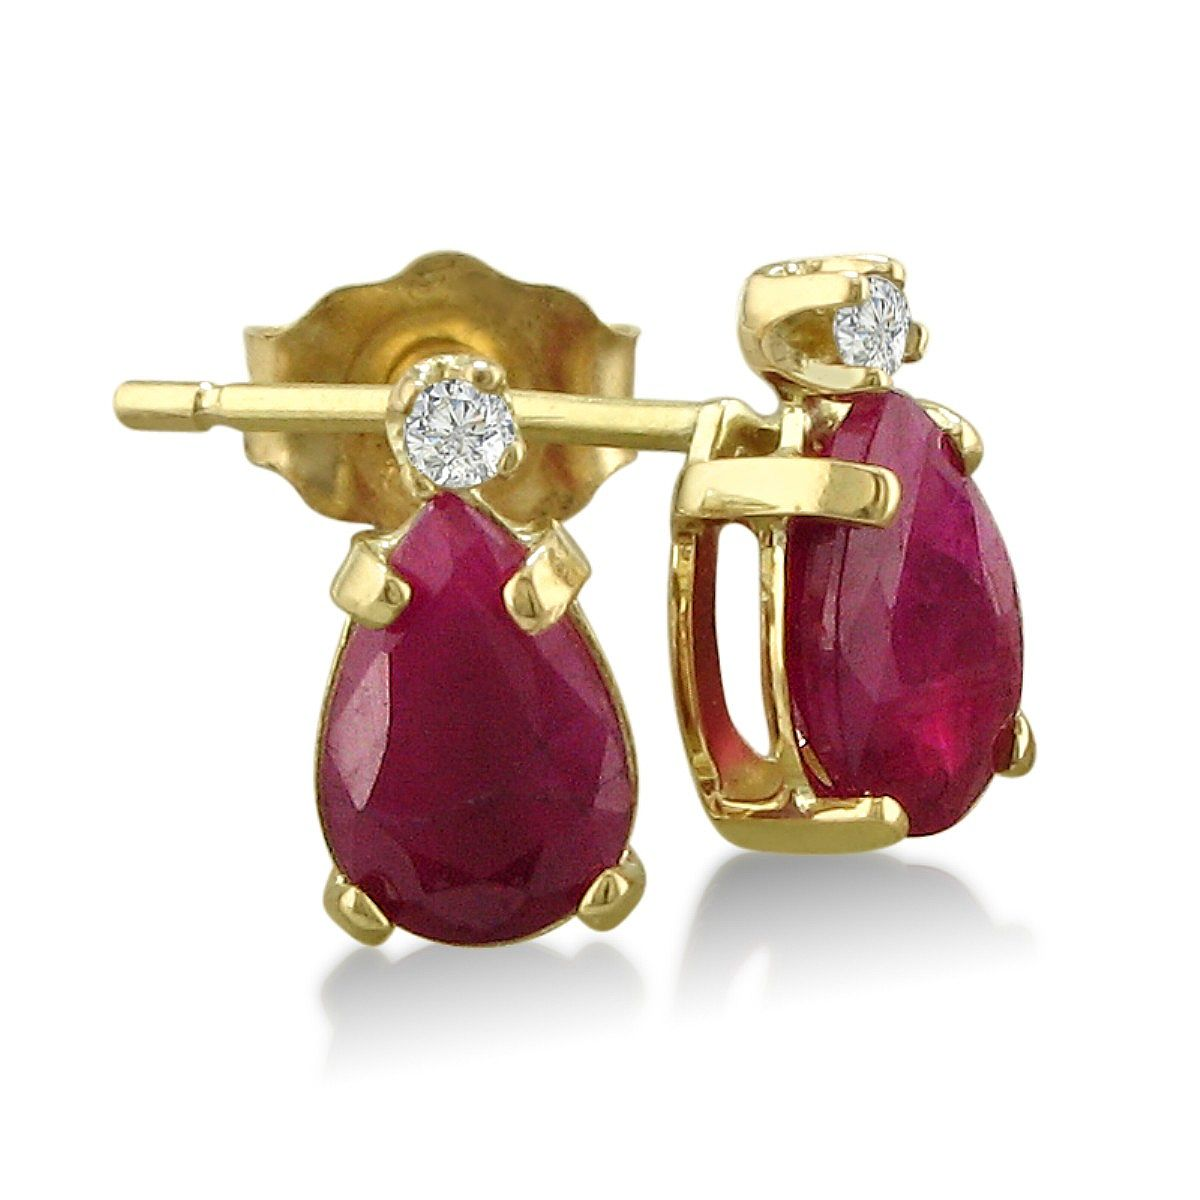 1 1/4ct Pear Shaped Ruby and Diamond Earrings in 14k Yellow Gold